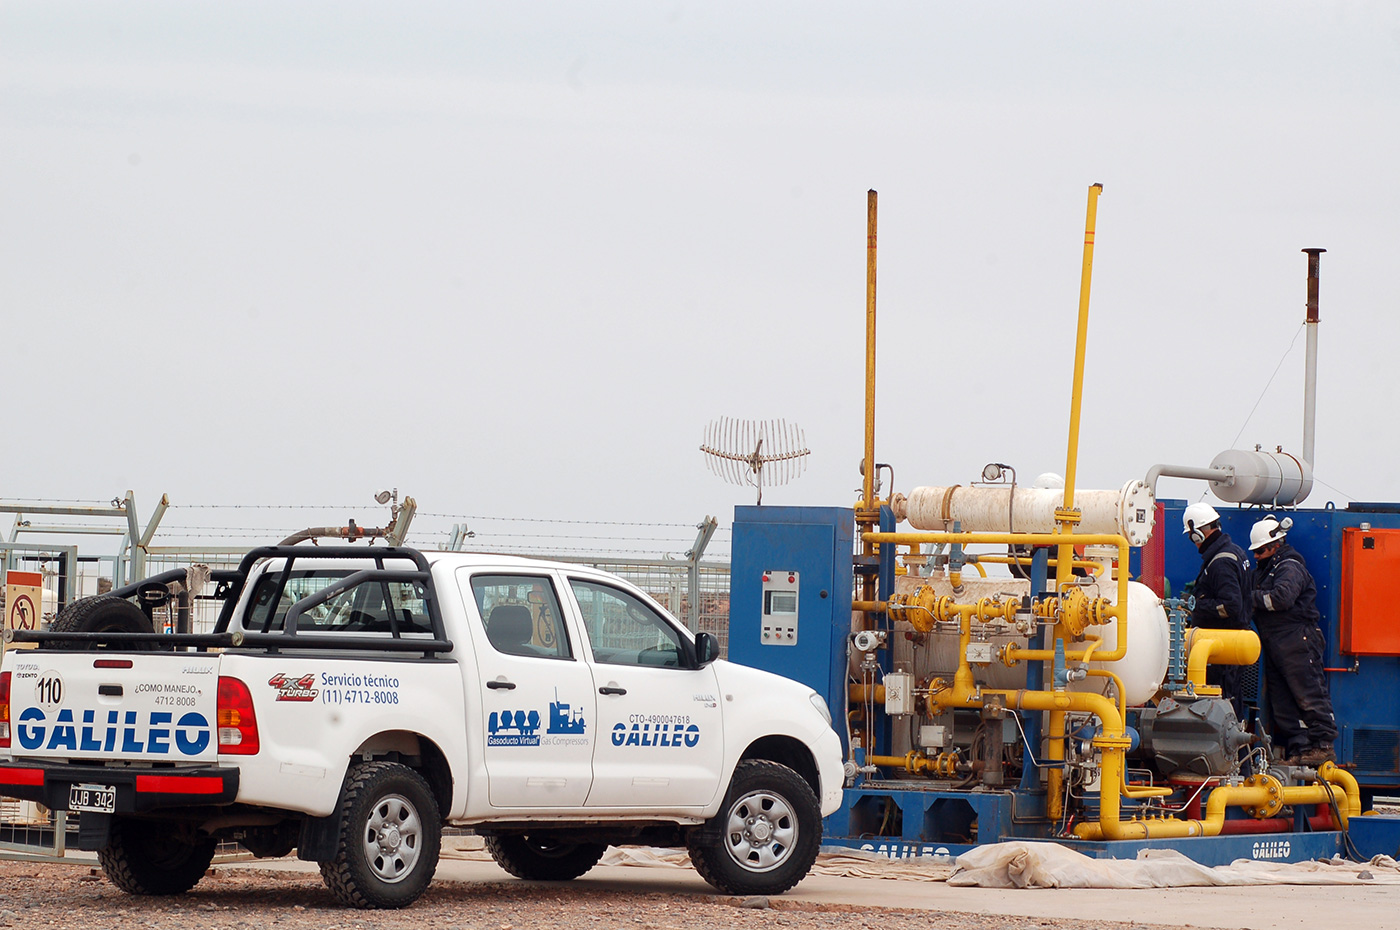 Galileo's field services personnel during the commissioning of Microskid Process compressor packages in a mature well operated by YPF (Yacimientos Petroliferos Fiscales) in Loma de la Lata, Argentina